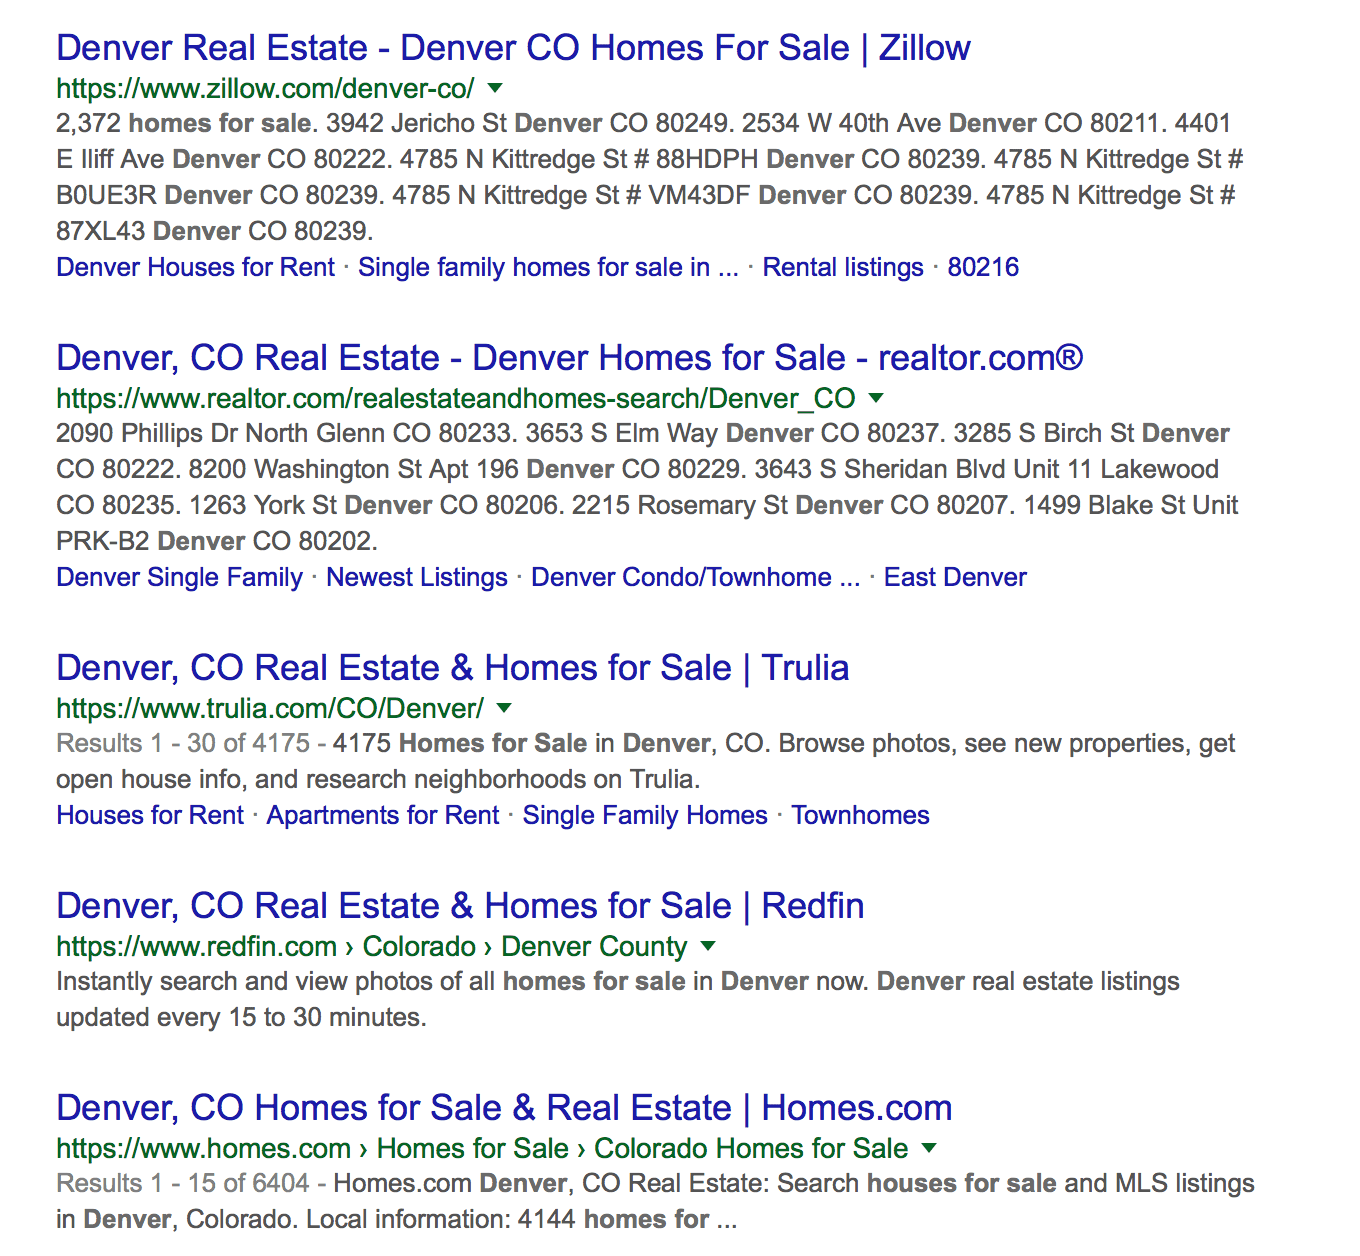 Search term denver homes for sale on Google returns Zillow, Realtor.com, Trulia, Homes.com etc.